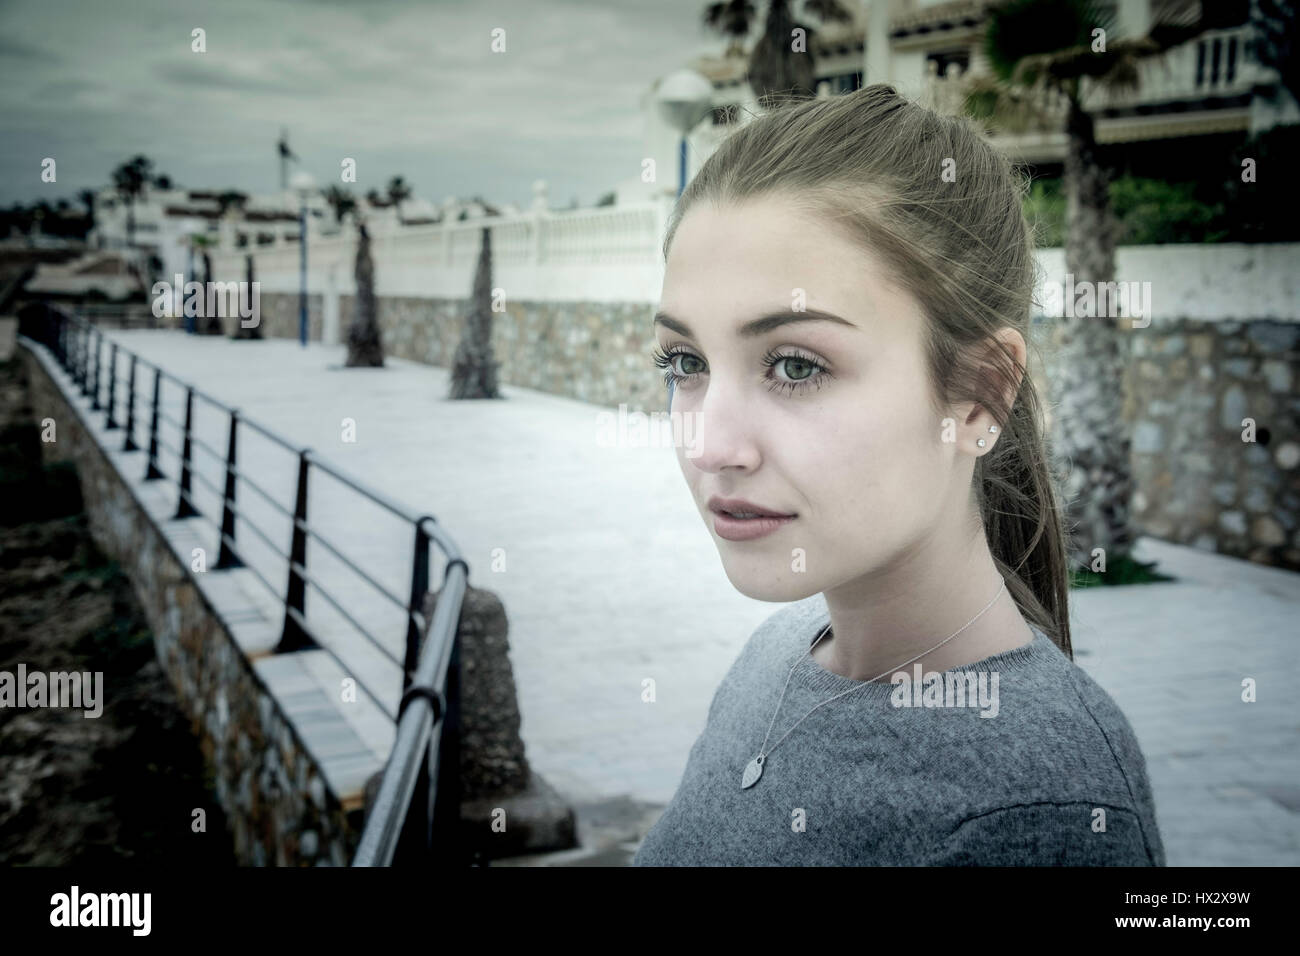 A overcast image of a teenage girl alone on a promenade by the sea. - Stock Image